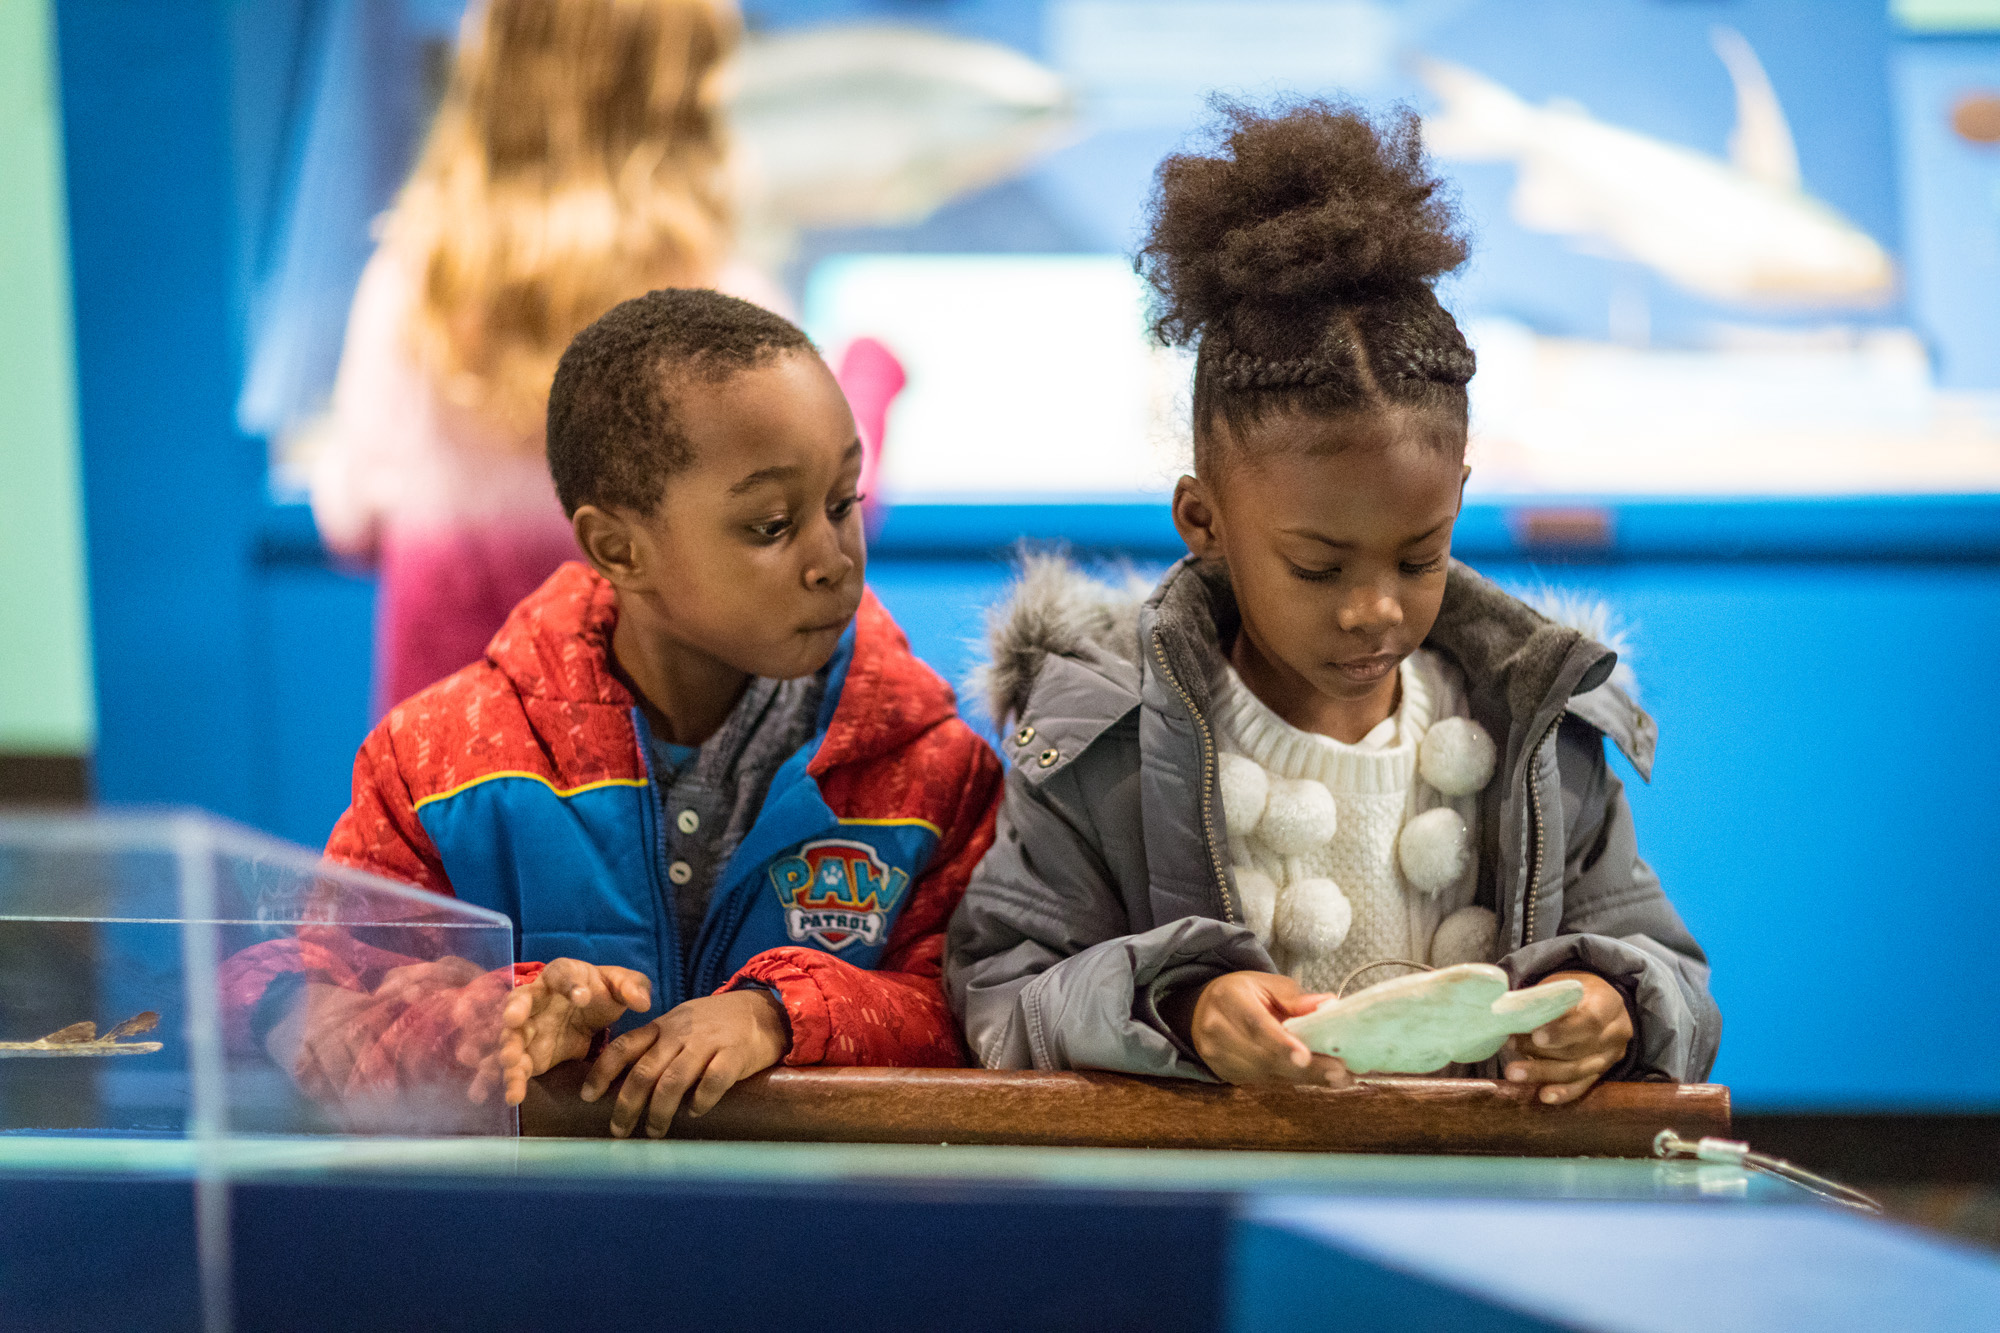 Two children play with objects in an exhibition. A young girl on the right inspects the replica fossilthat she holds with both of her hands. The young boy to her left looks over her shoulder to also wonder at the object.